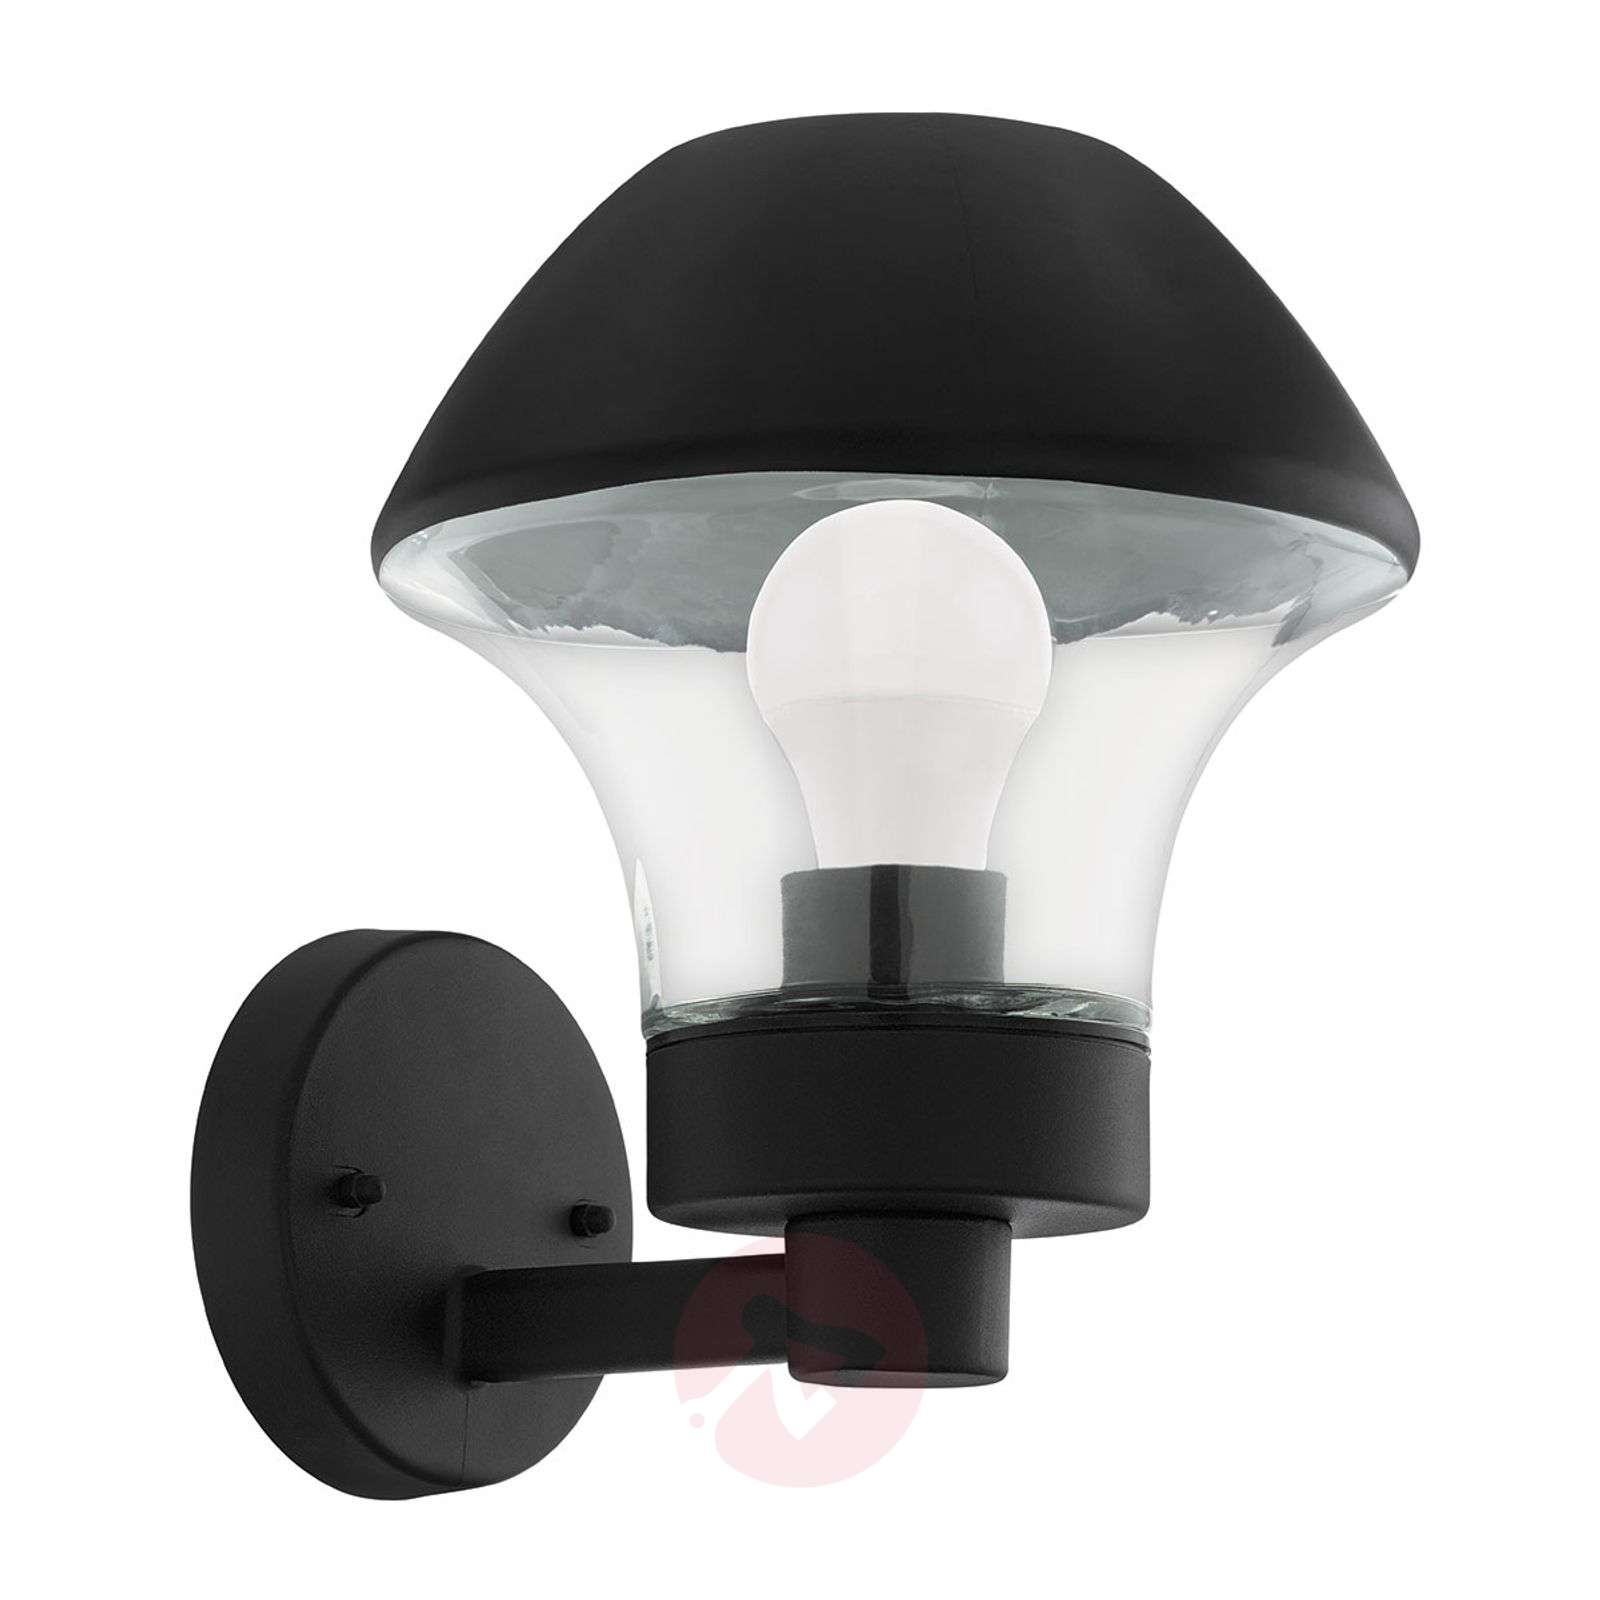 EGLO connect Verlucca-C aplique LED para exterior-3032169-02